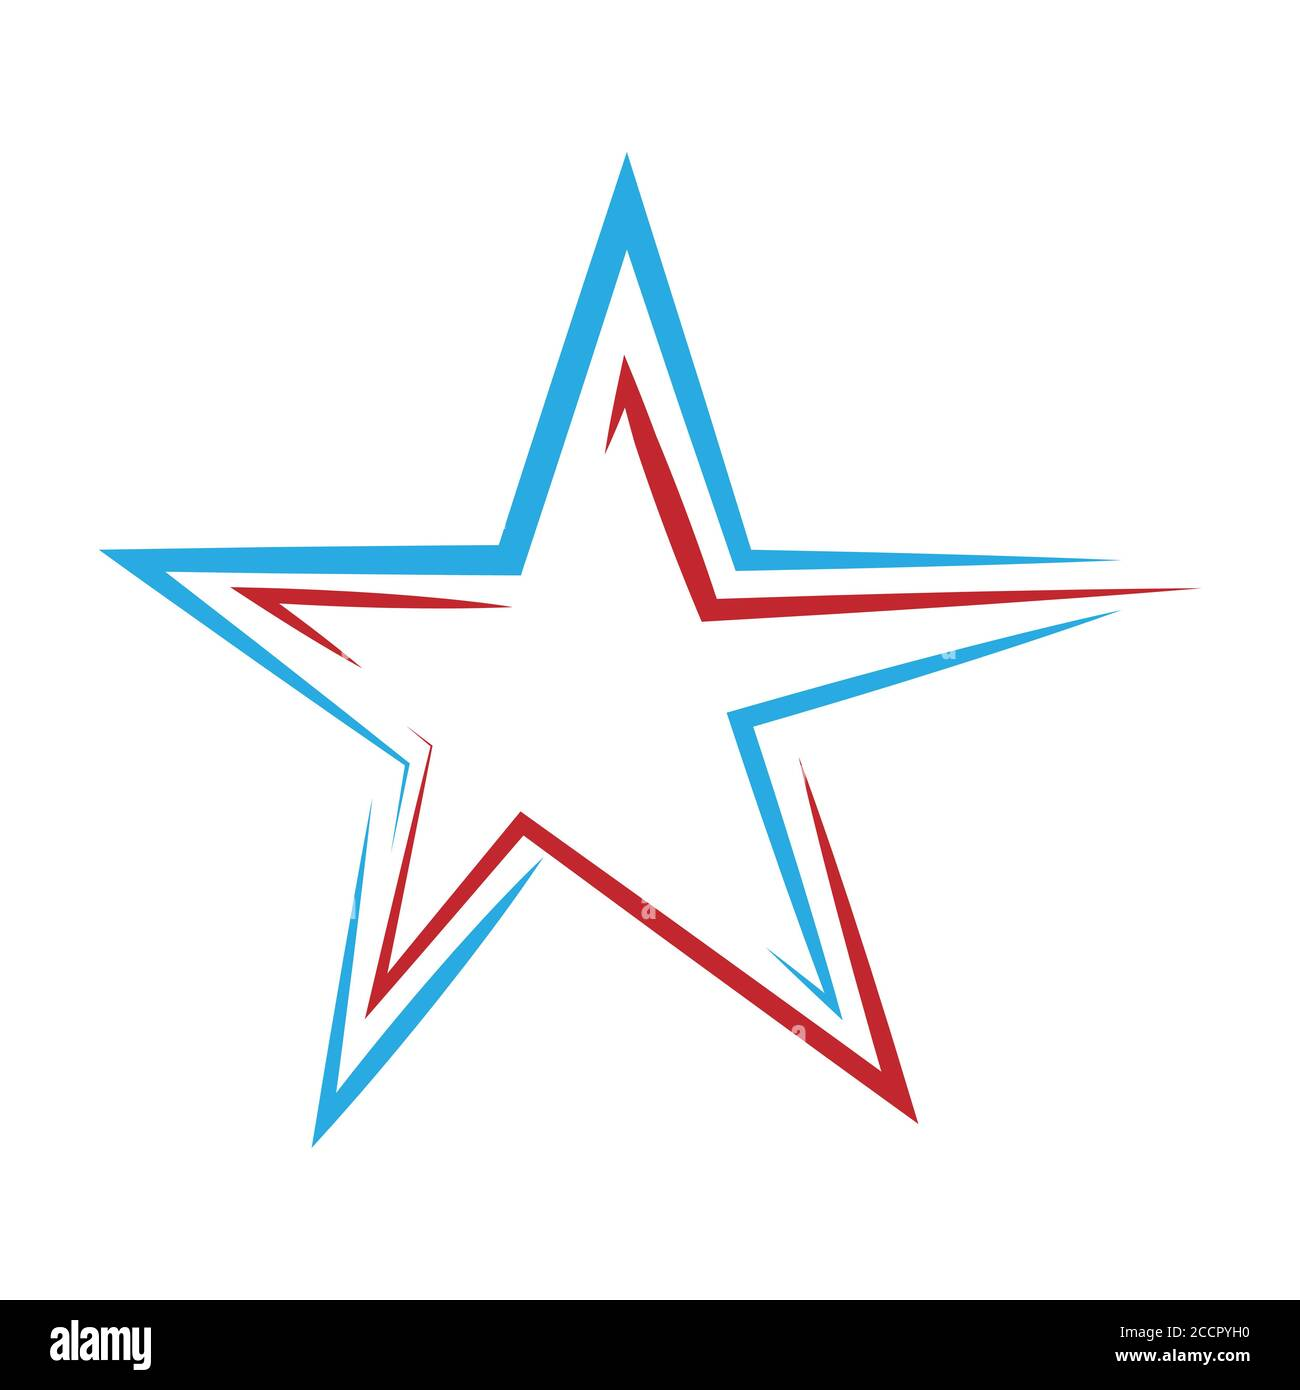 Star. Template for a logo, sticker, or emblem isolated on a white background Stock Vector